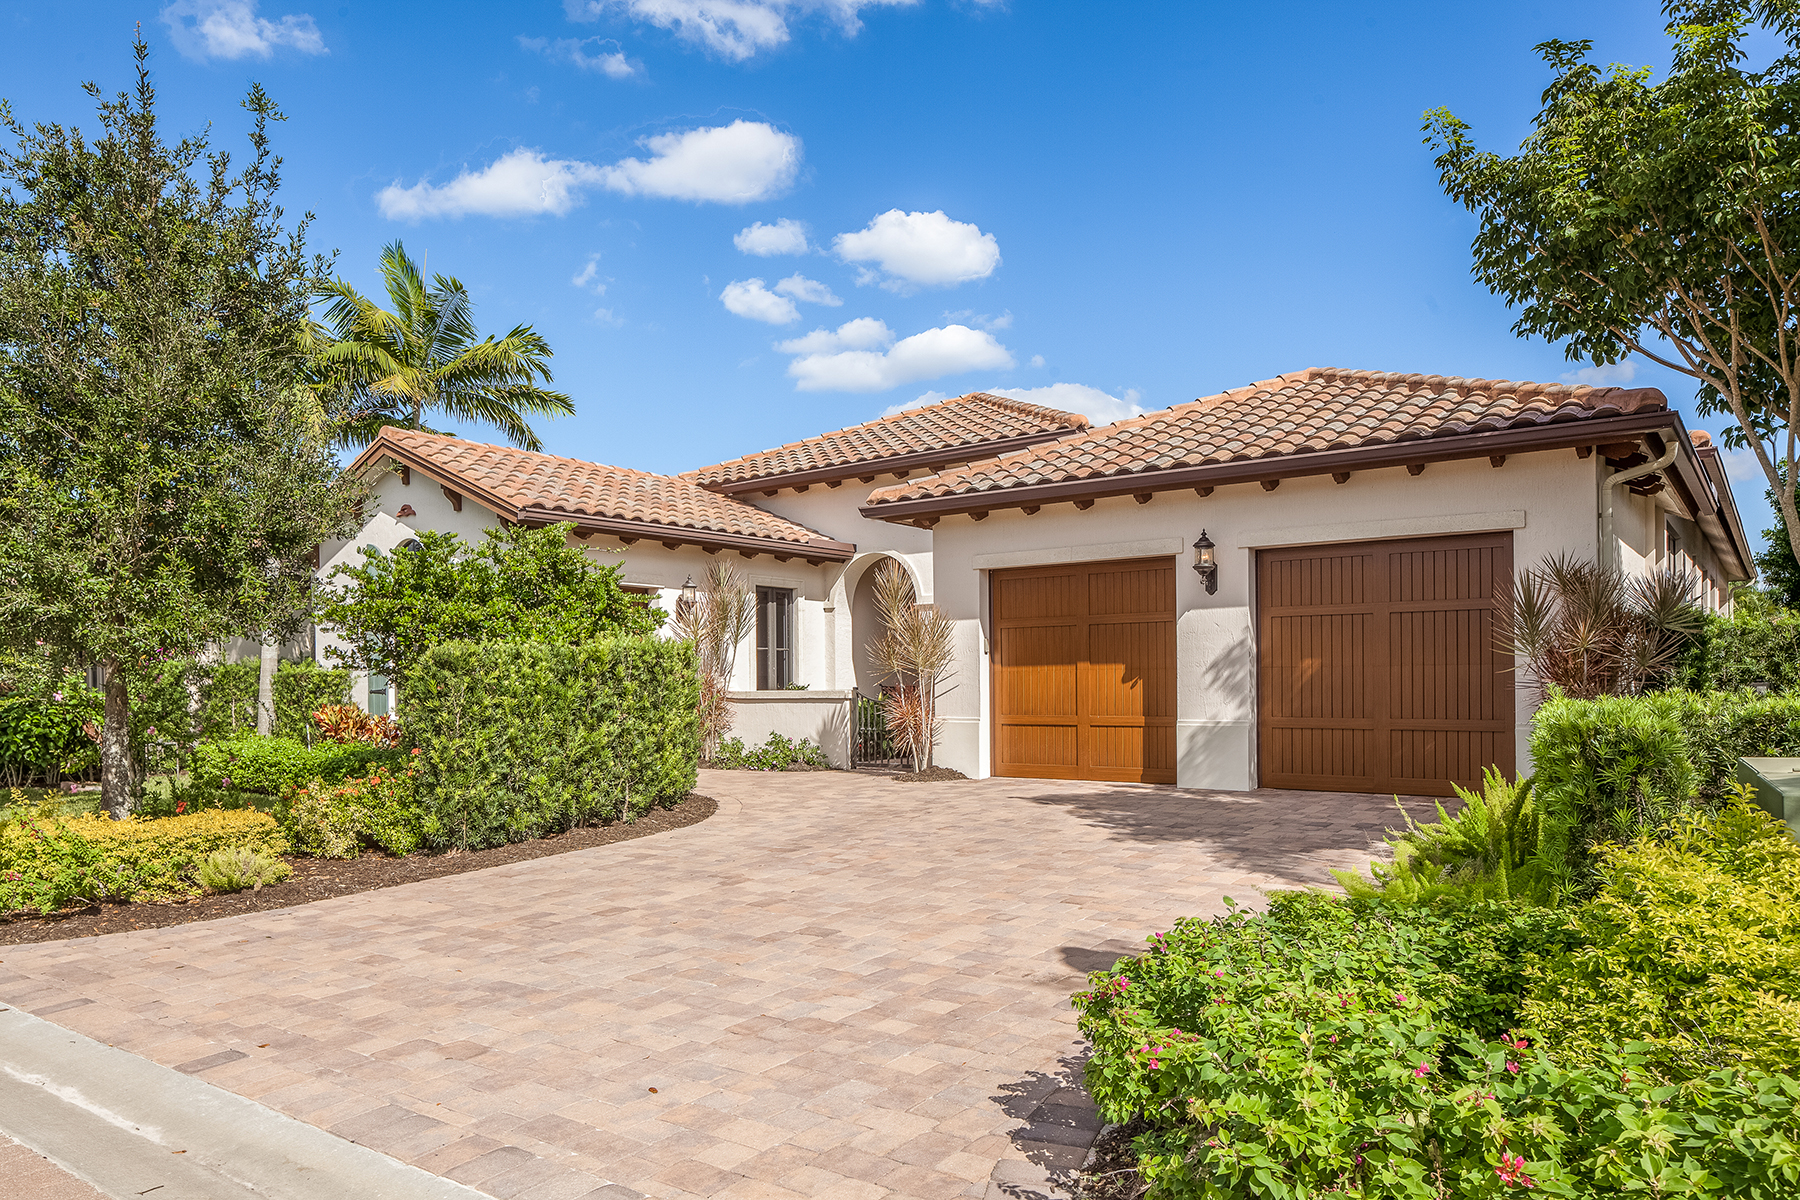 Casa Unifamiliar por un Venta en GREY OAKS - TRADITIONS 2224 Residence Cir Naples, Florida, 34105 Estados Unidos